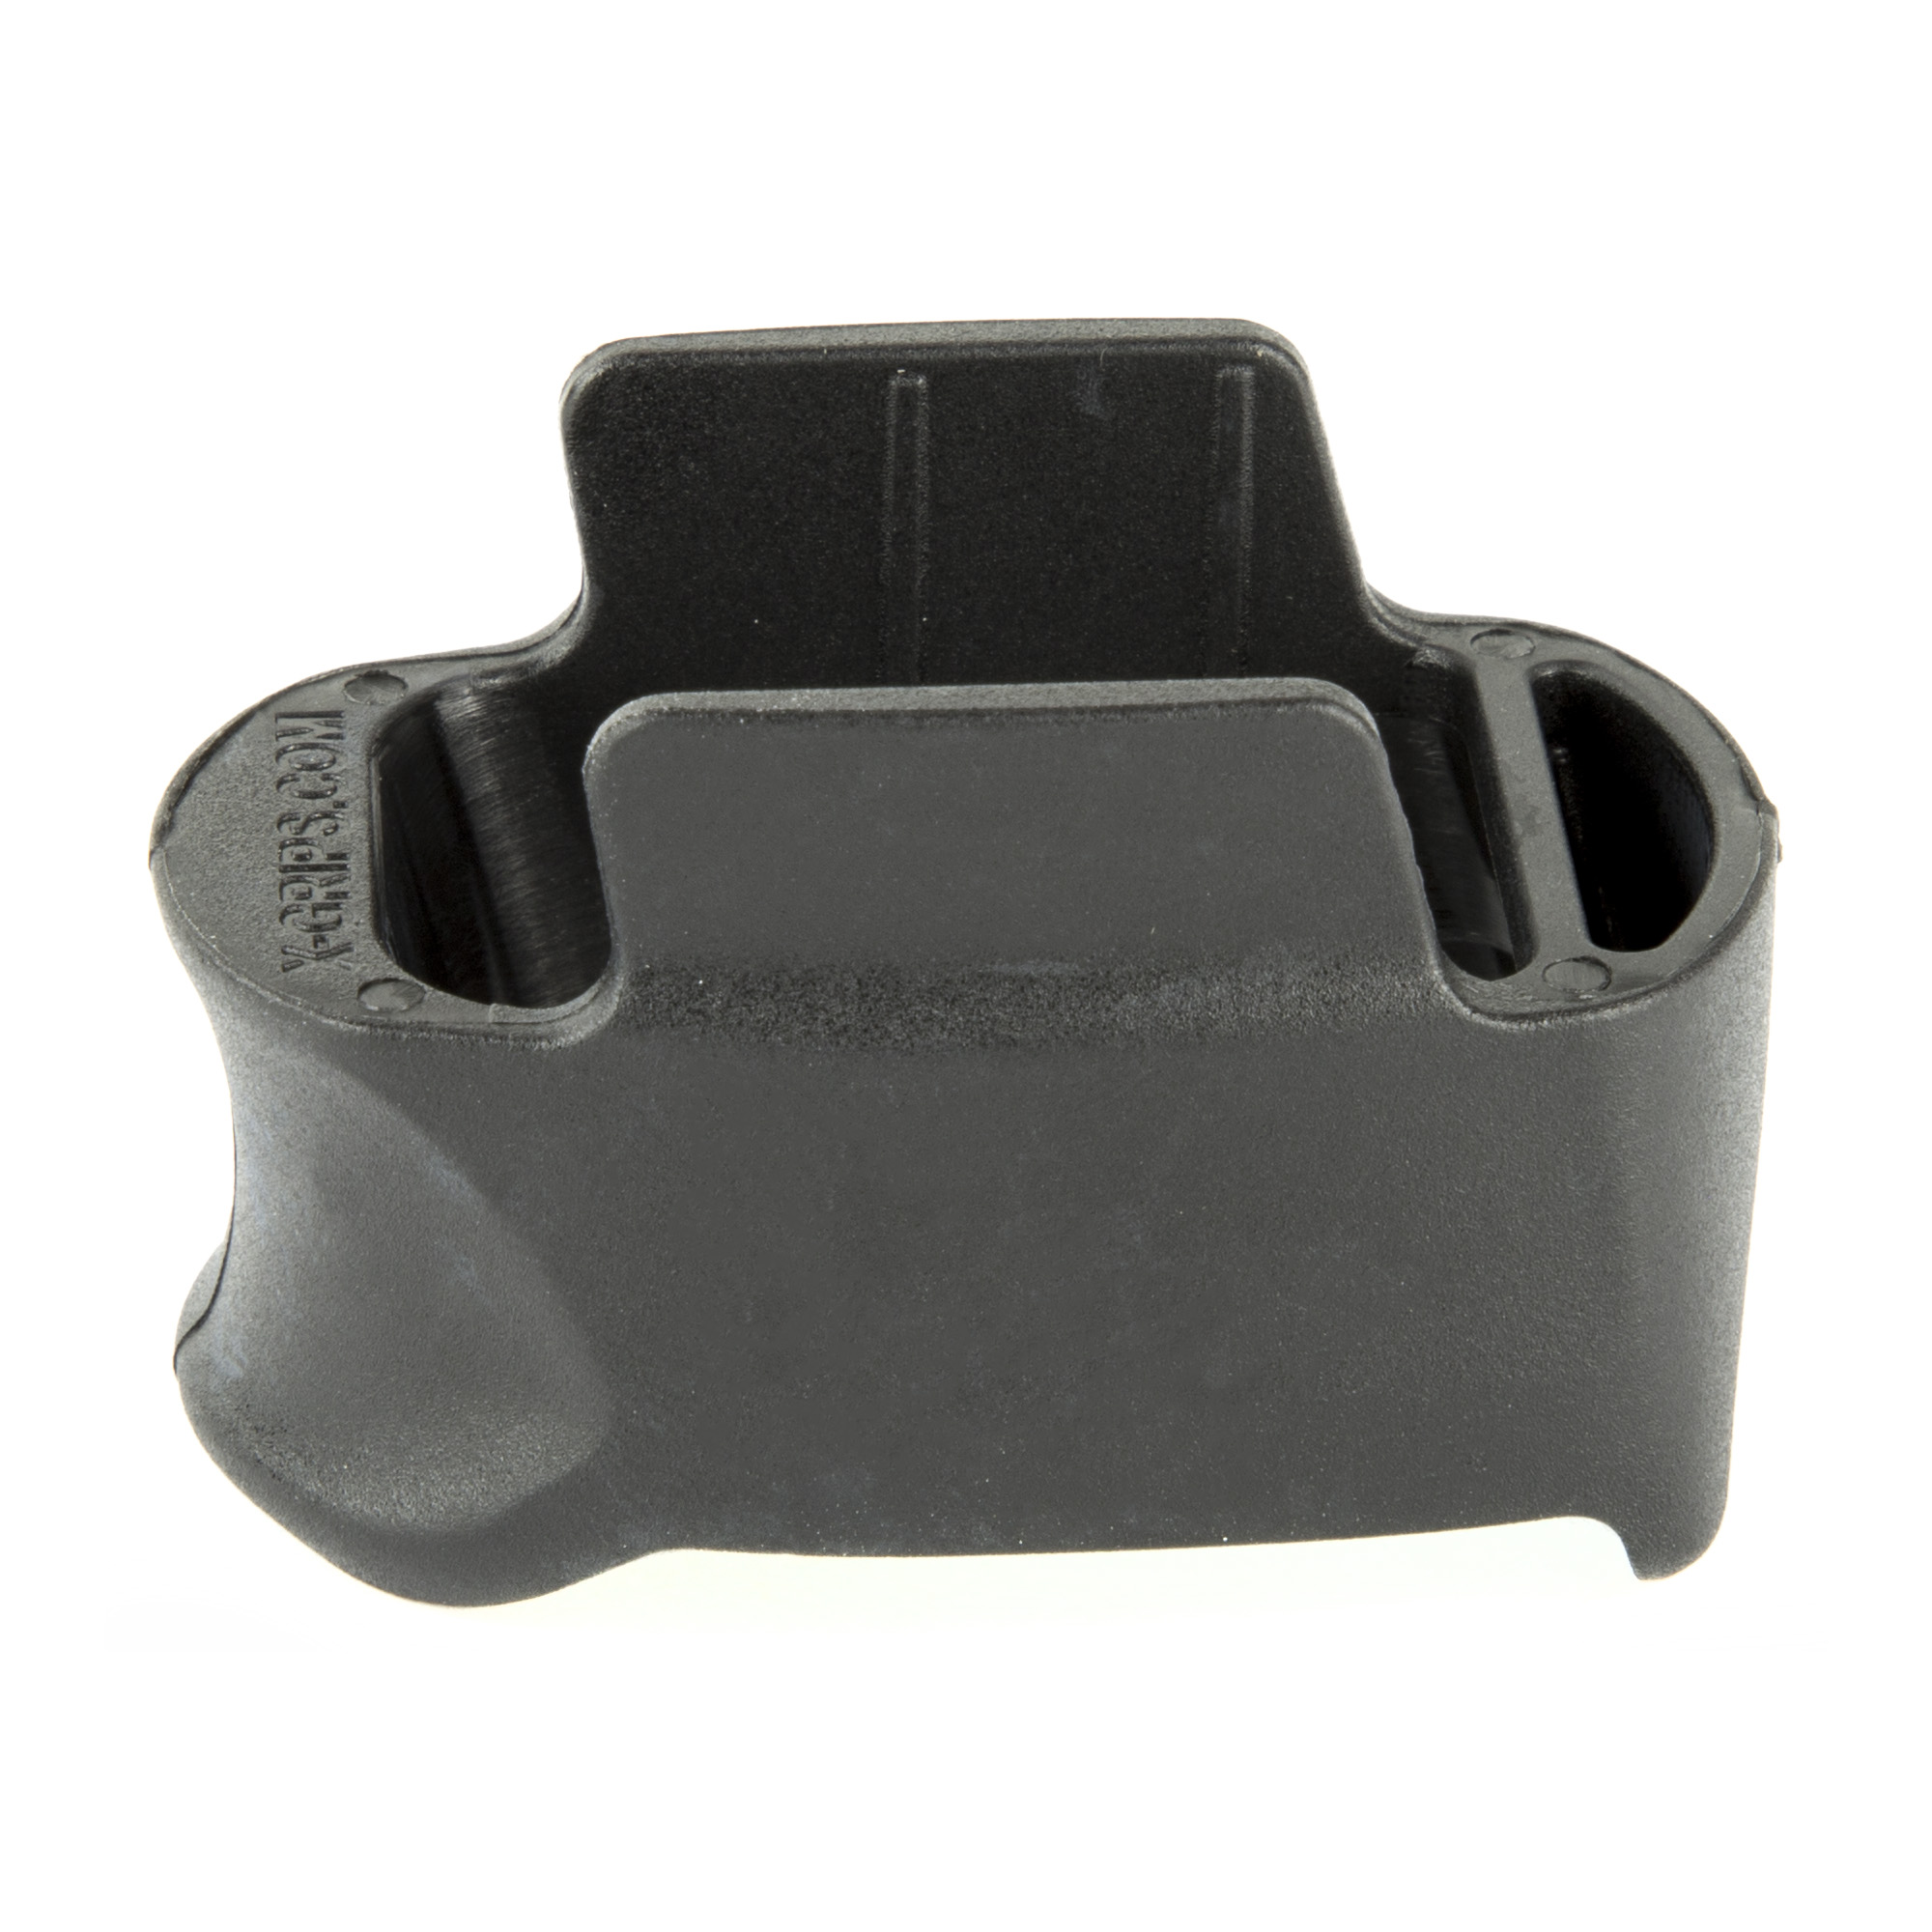 """This XGRIP adapts the higher capacity SIG P320/250 Full size magazine for use in the P320/250SC pistols"""" incorporating the larger magazine into the sub compact pistol's grip and increasing the gun's capacity."""